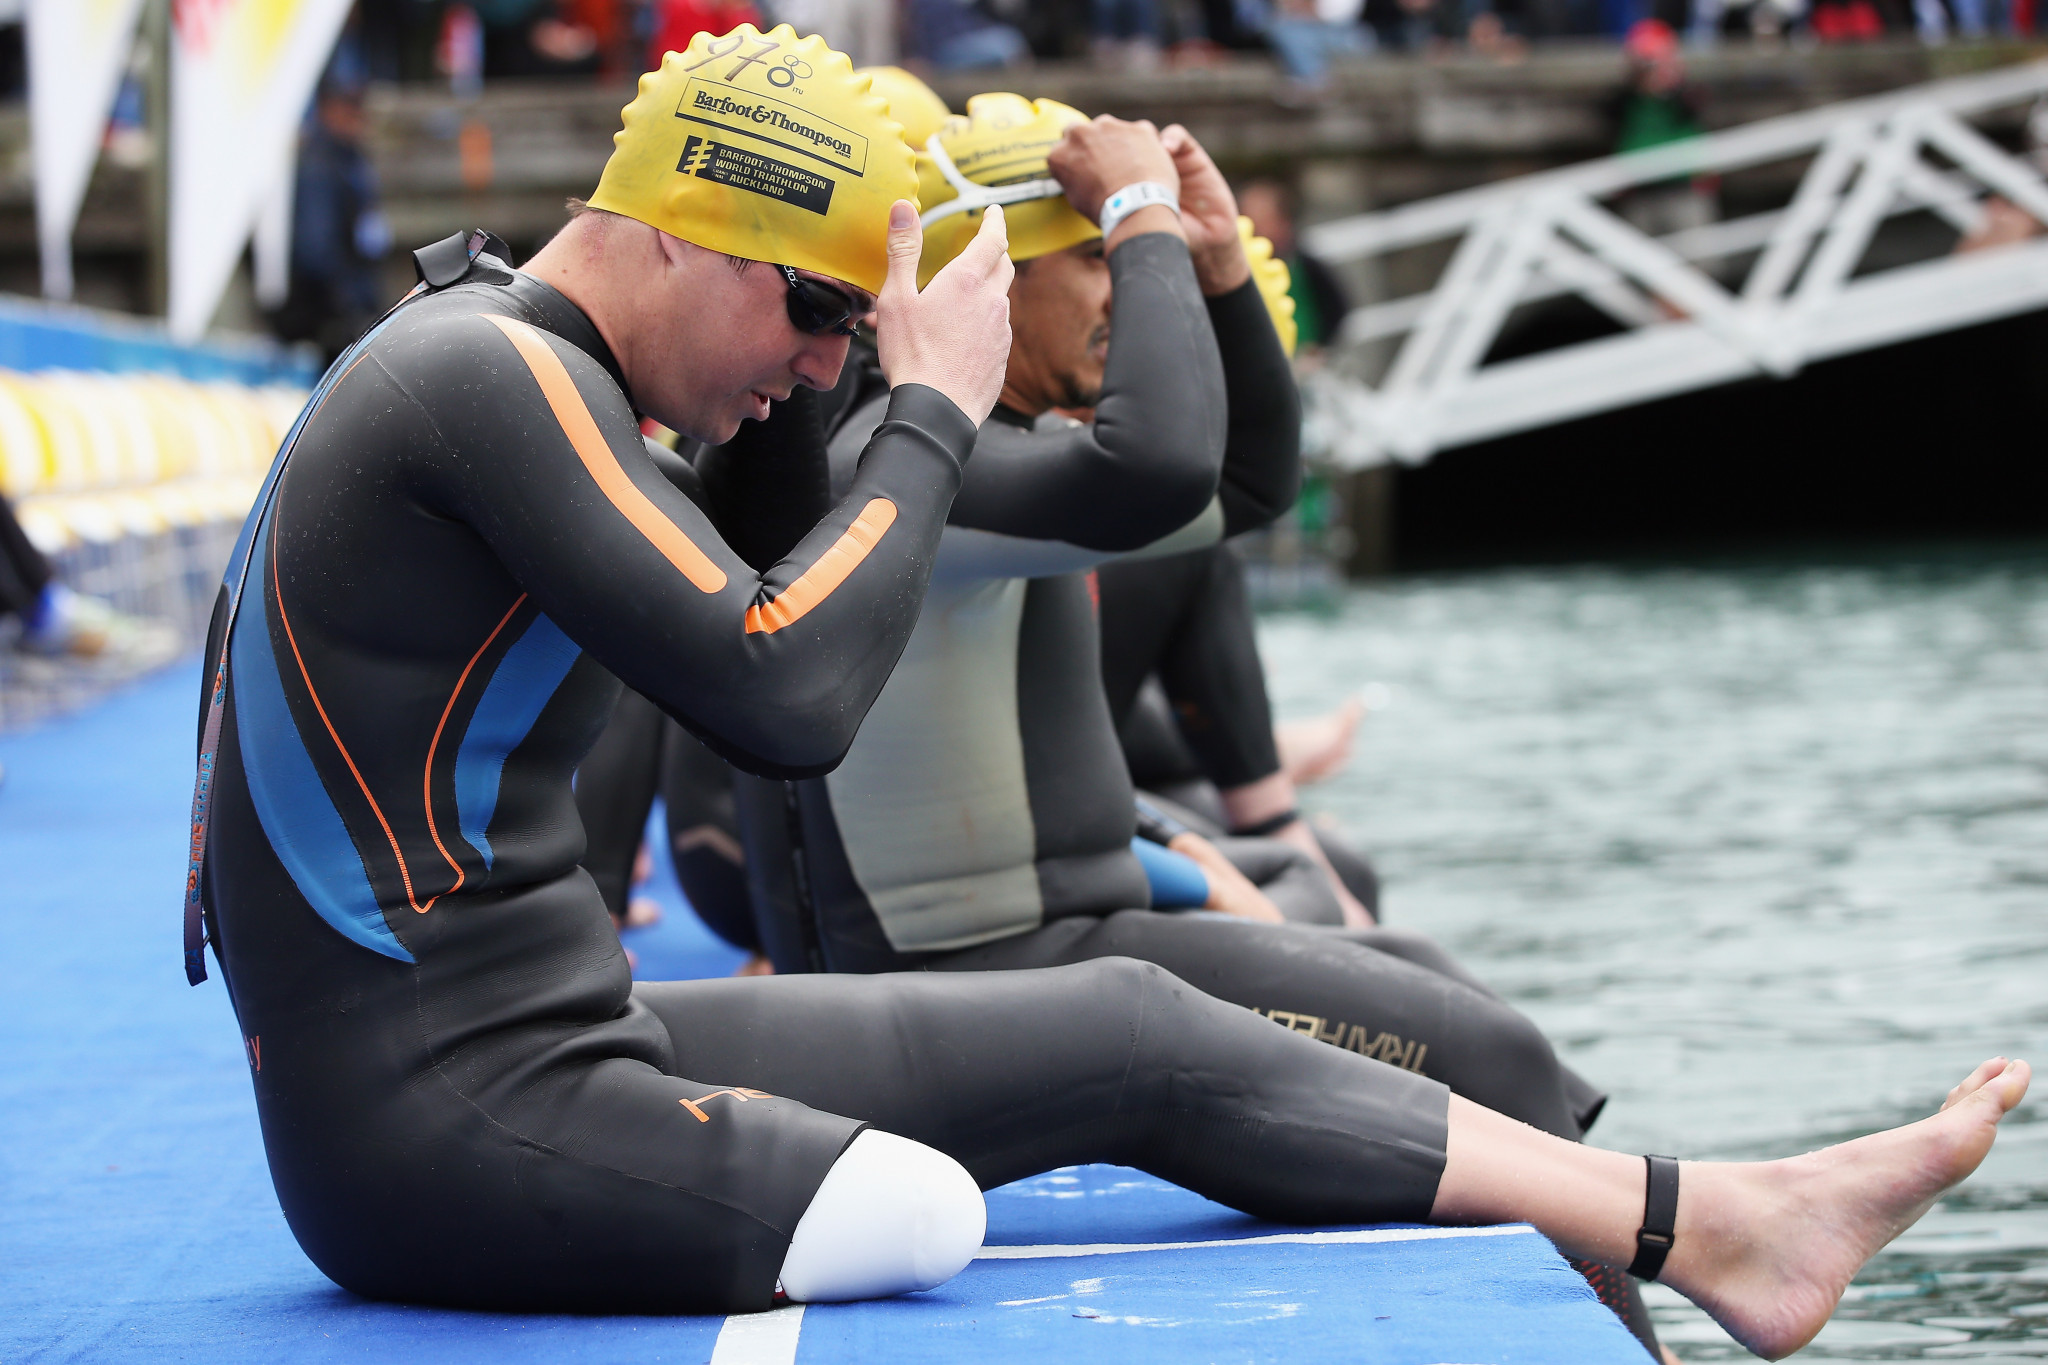 Course to host triathlon at Los Angeles 2028 to stage United States Paratriathlon National Championships